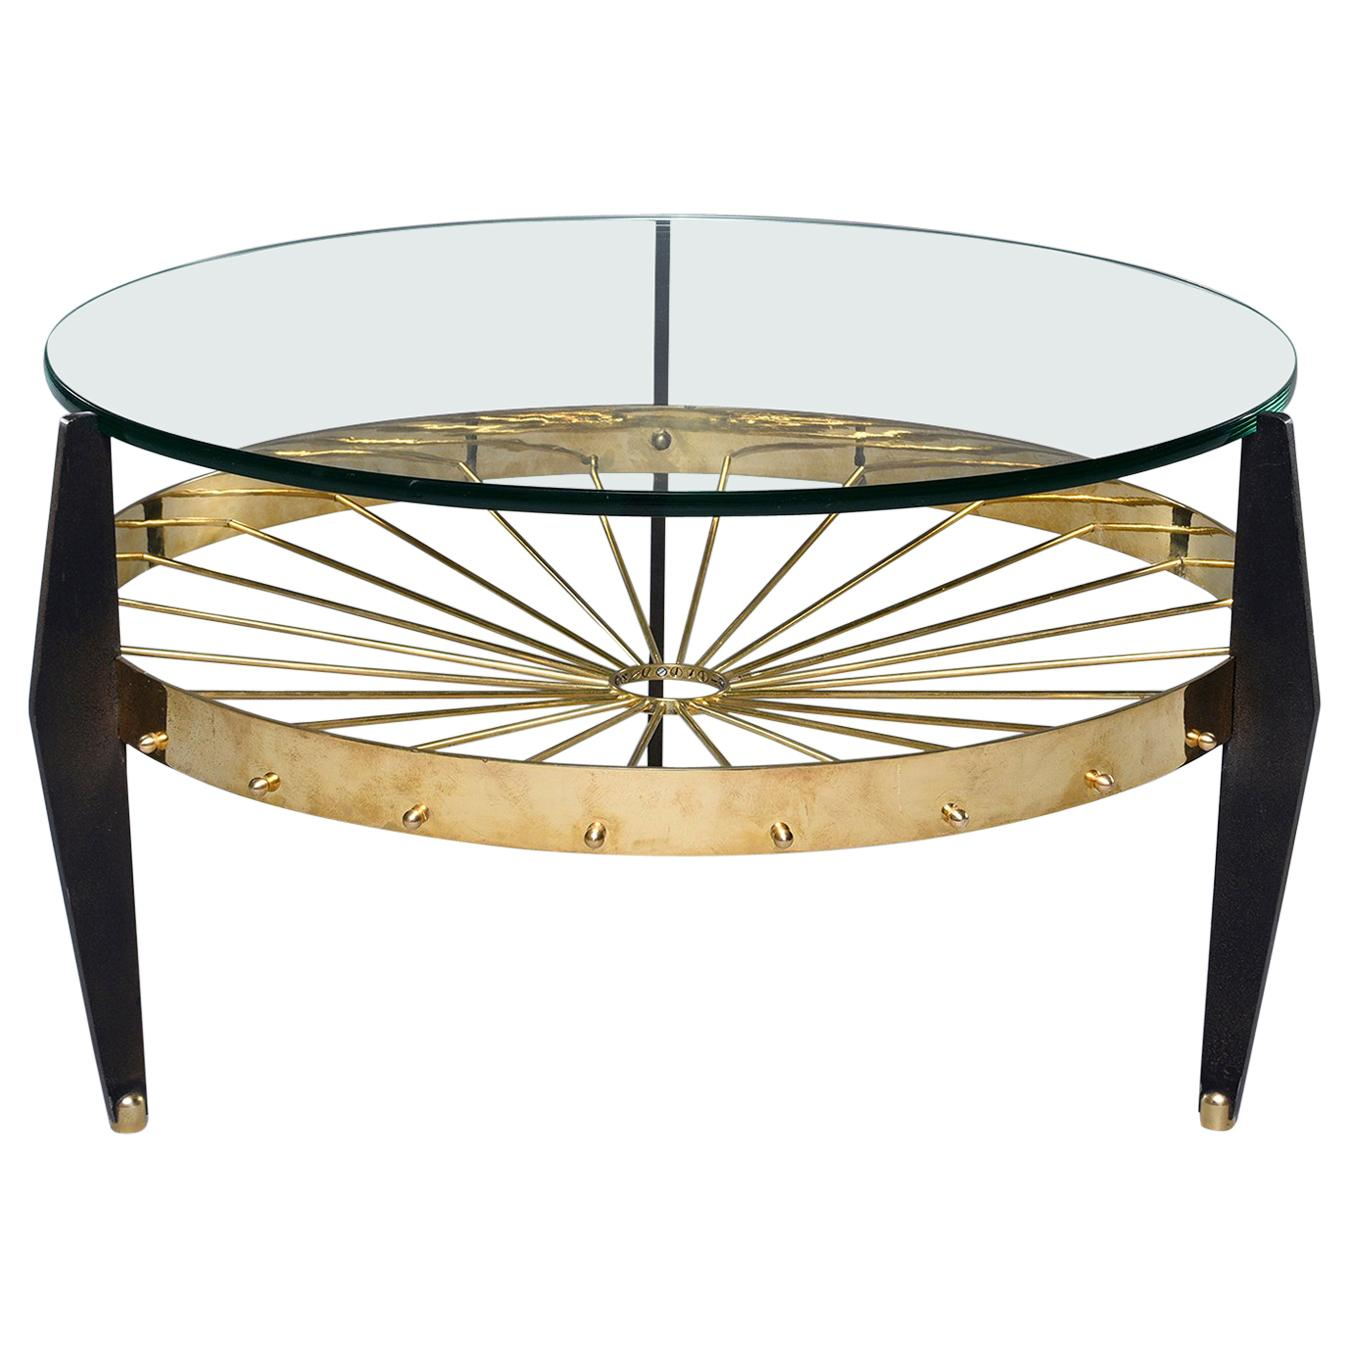 Italian Two Tier Table With Brass Spokes Wood Legs And Glass Top For Sale